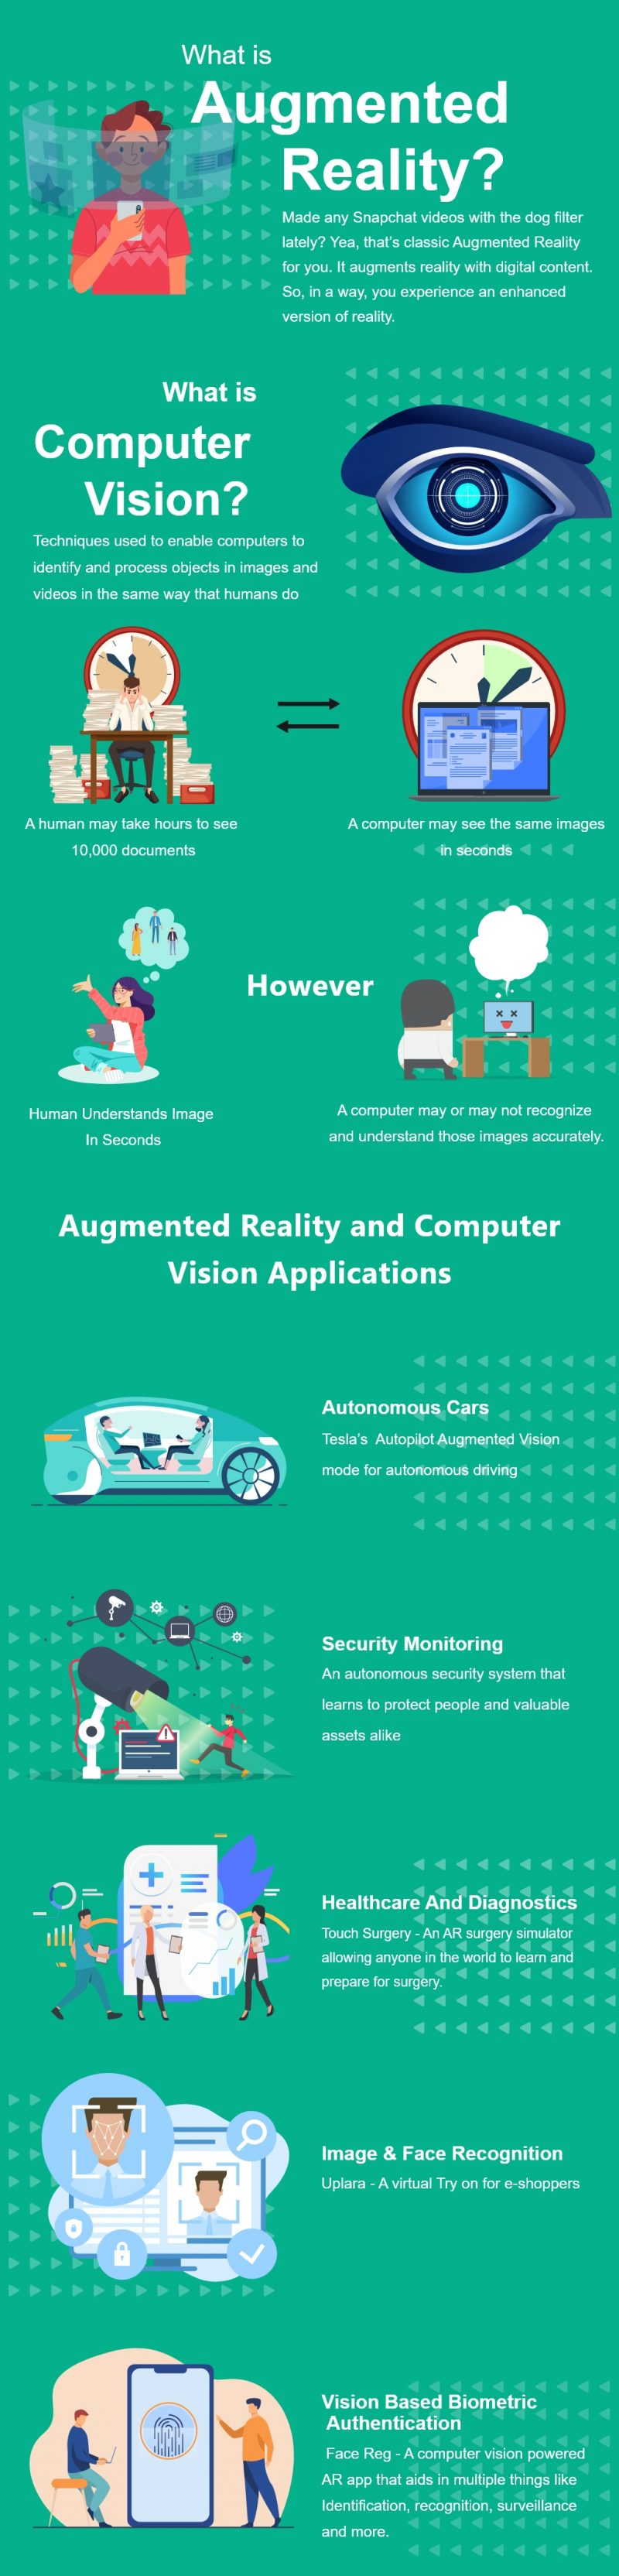 Augmented Reality vs Computer Vision